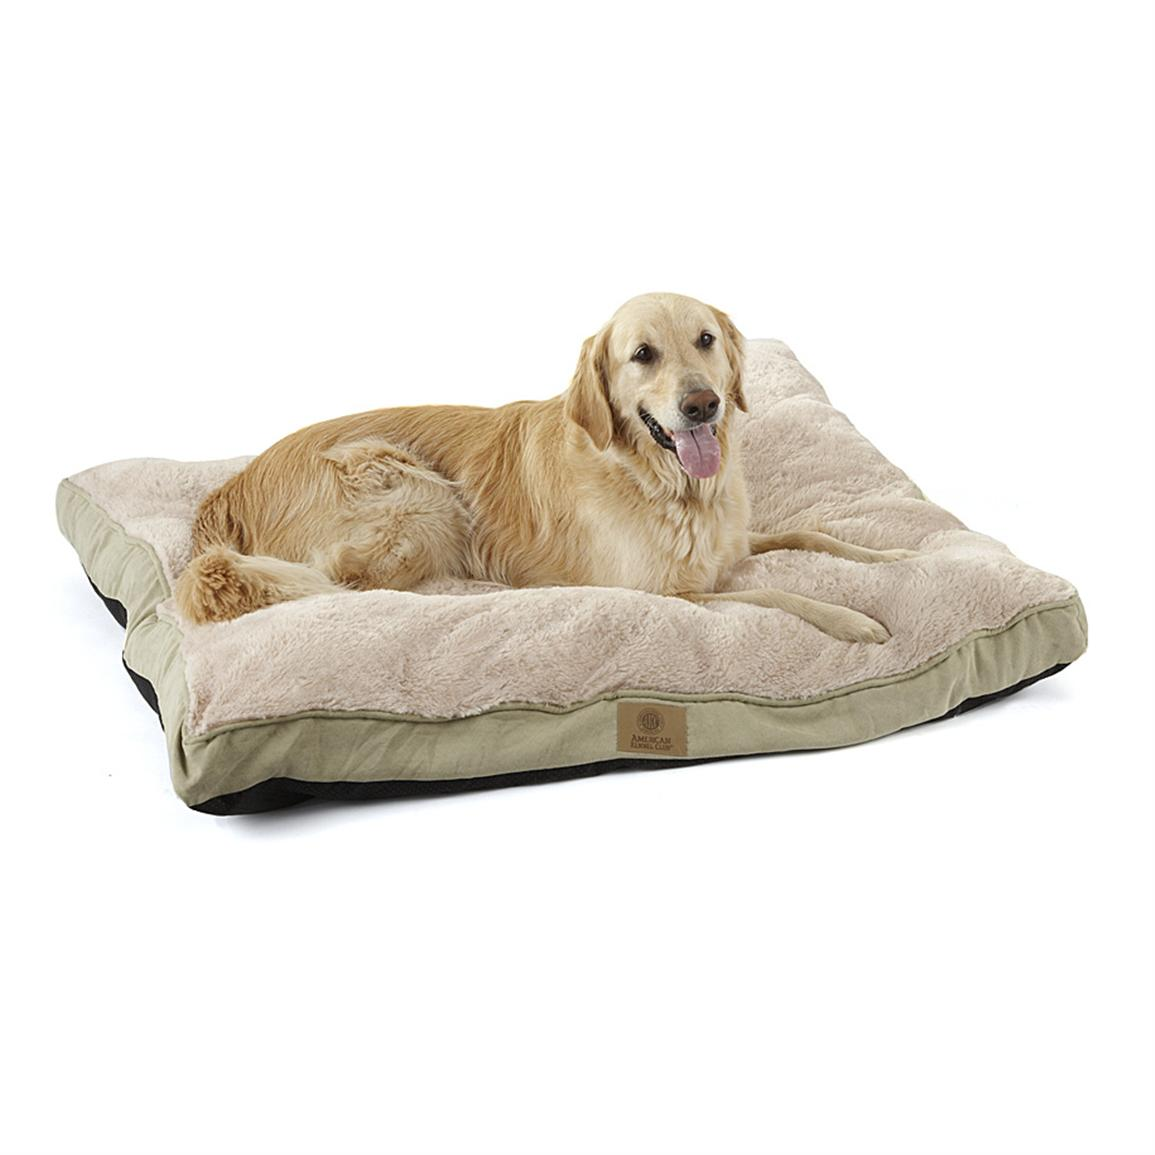 American Kennel Club® Deluxe Fur / Suede-like Pet Bed